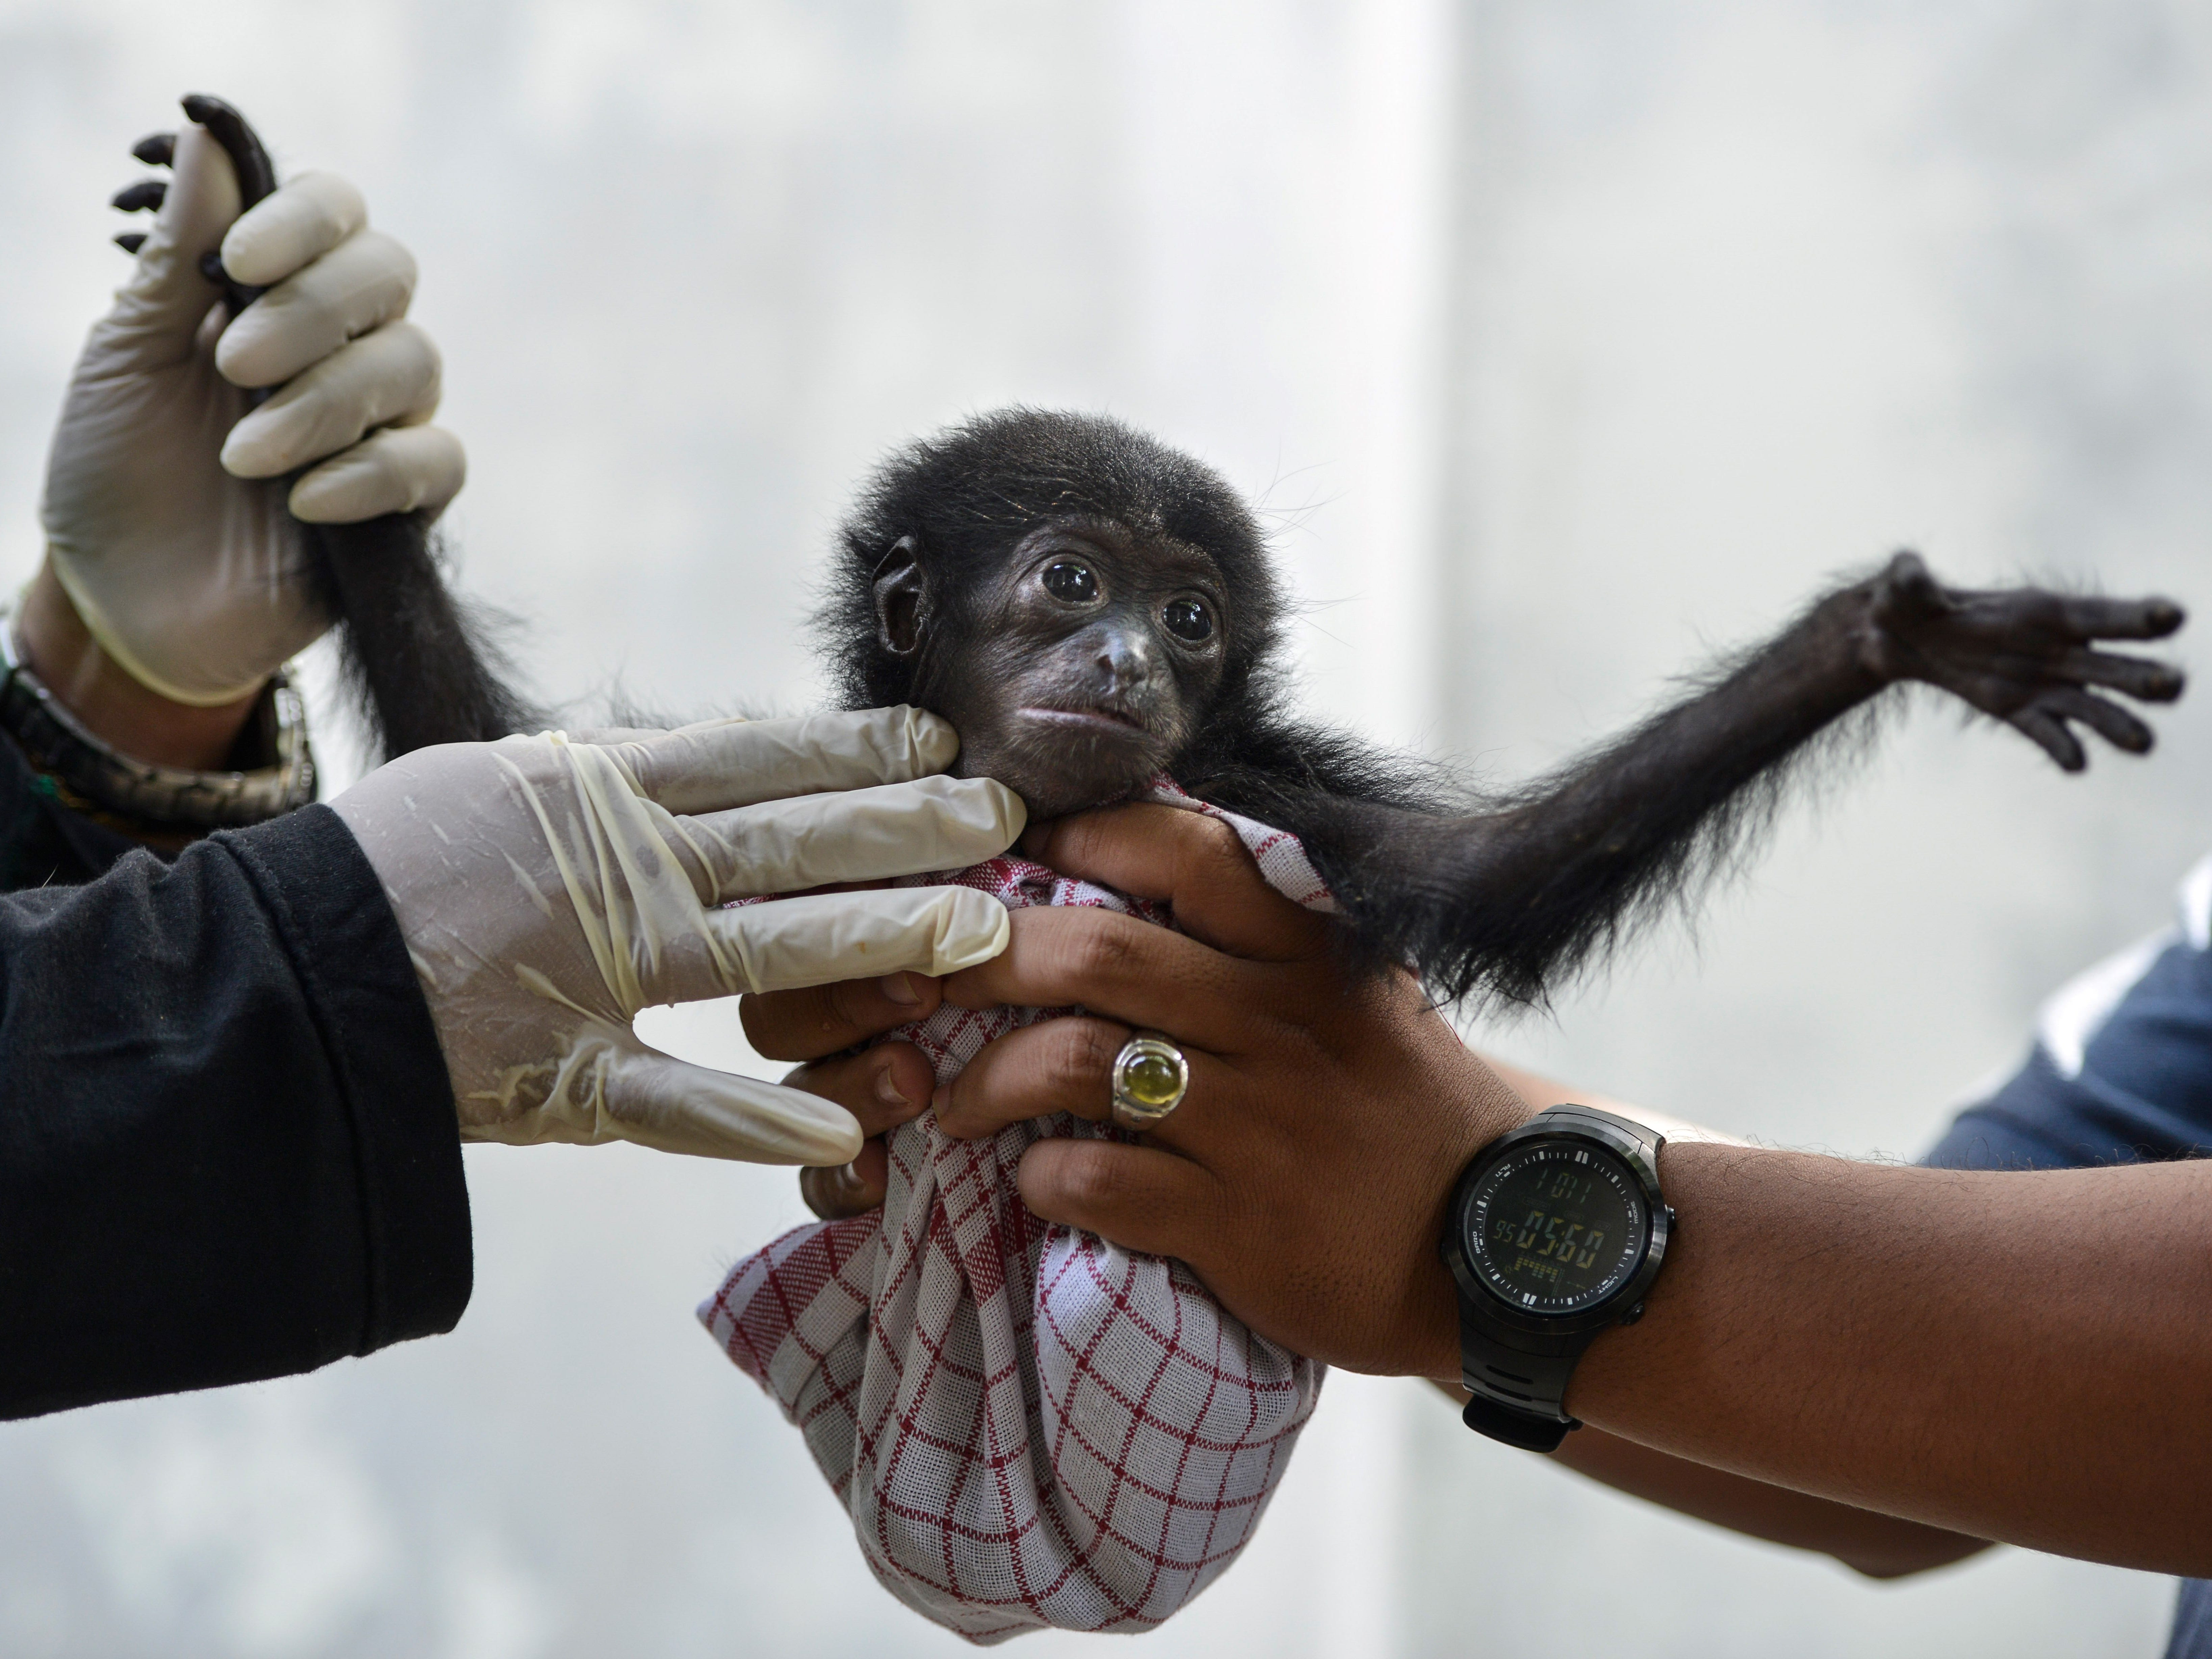 Vets check a baby siamang, or black-furred gibbon, rescued from a villager, at the local nature conservation agency's office in Banda Aceh, Aceh province of Indonesia on November 1, 2018.